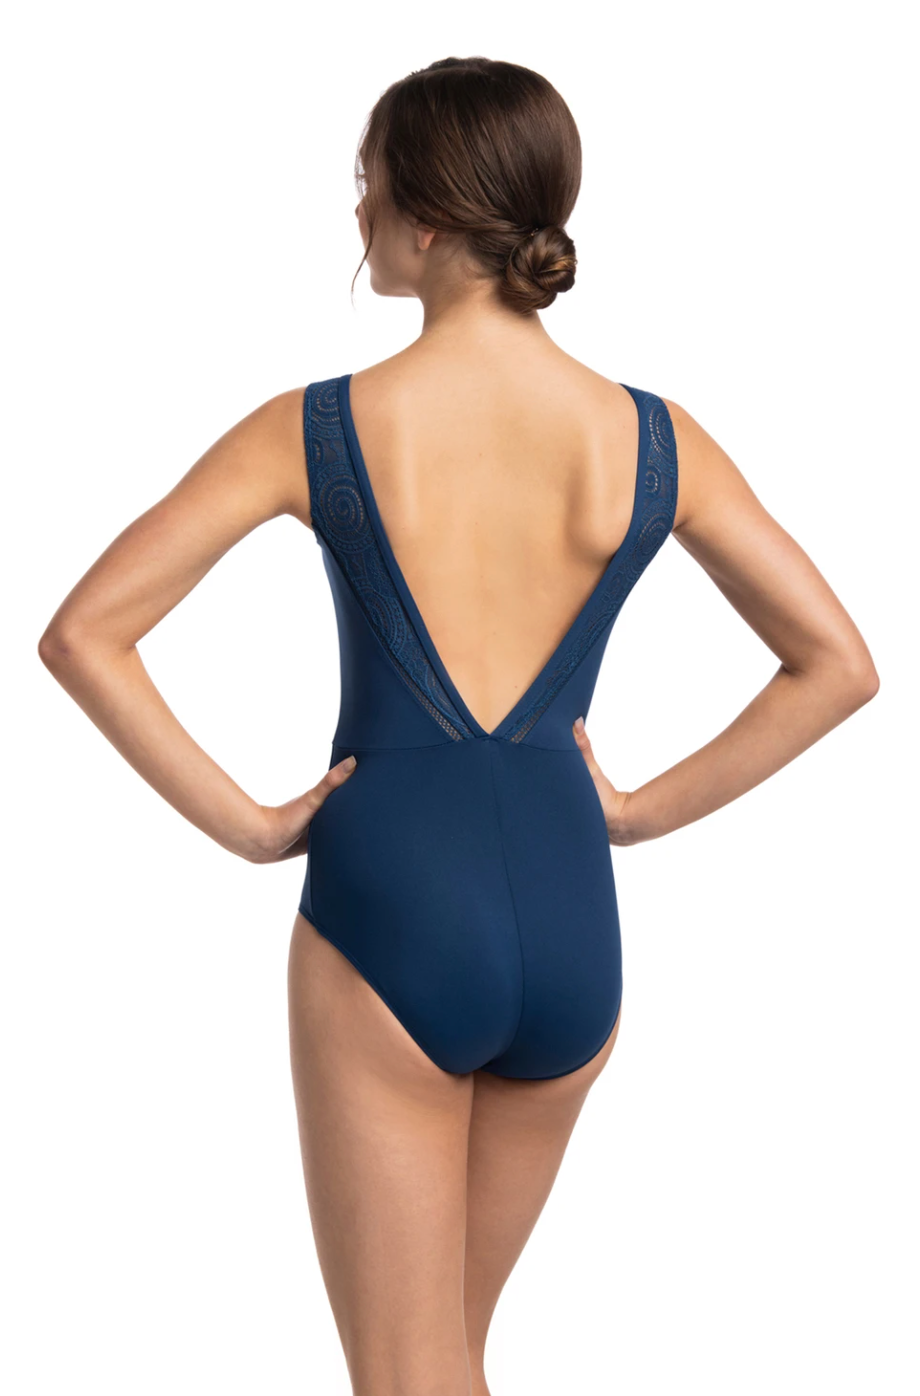 Ainsliewear Kimberley Leotard with Lola Lace - 1060LL